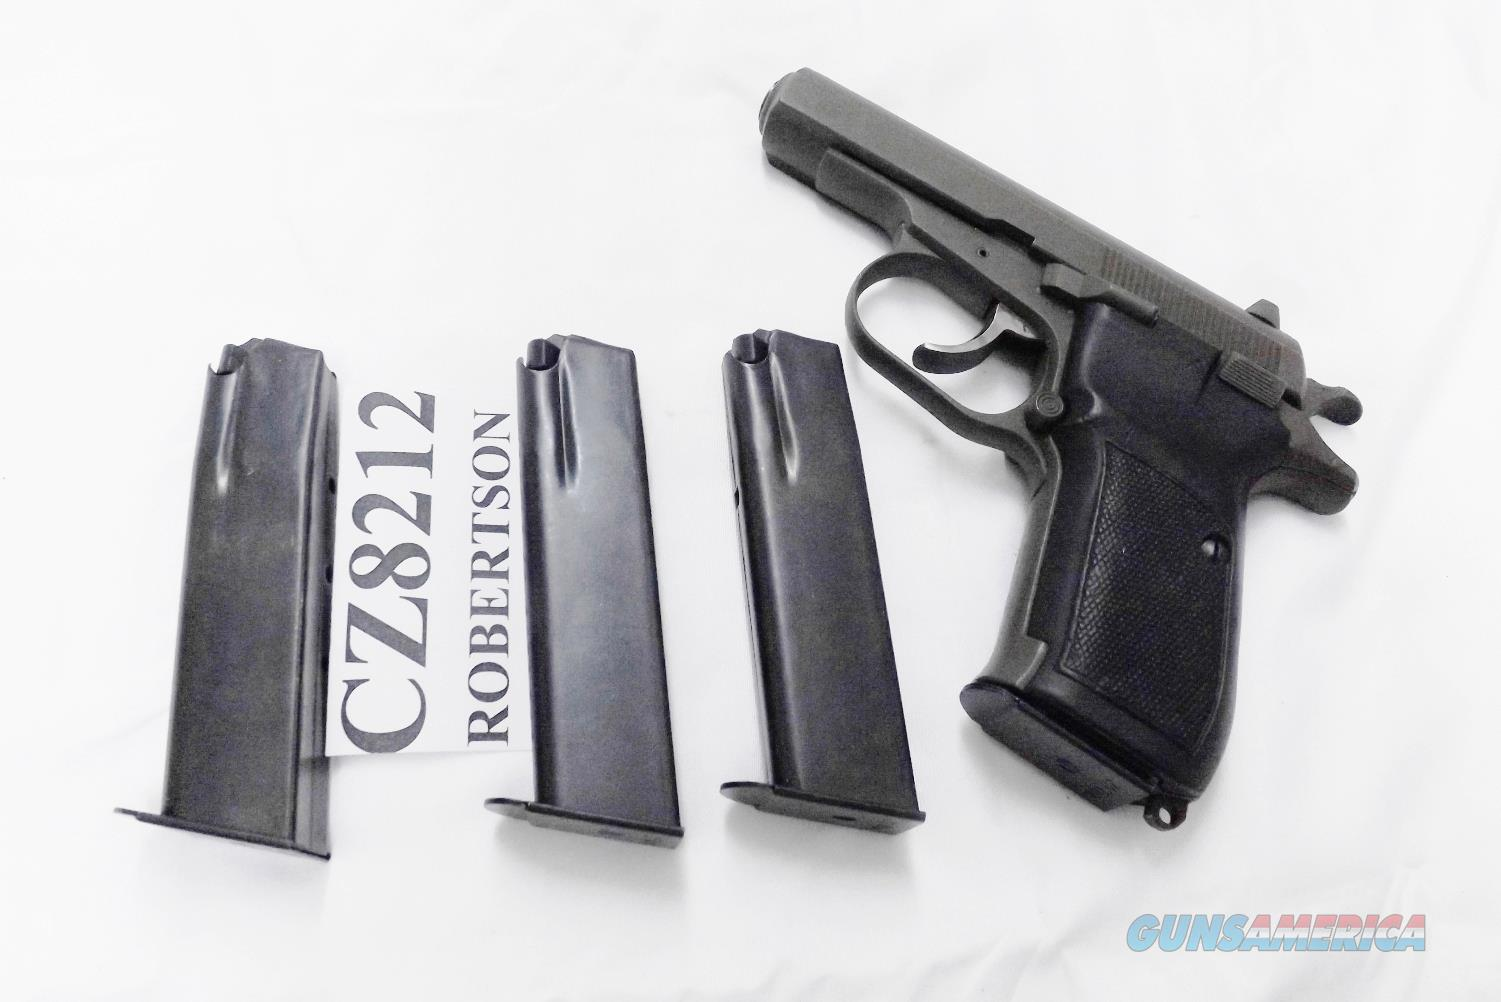 3 CZ-83 .380 or CZ-82 9x18 Makarov CZ Military 12 round Magazines $26 each Blue Pressure Treated New XMCZ8212 Free Shipping Lower 48!  Non-Guns > Magazines & Clips > Pistol Magazines > Other